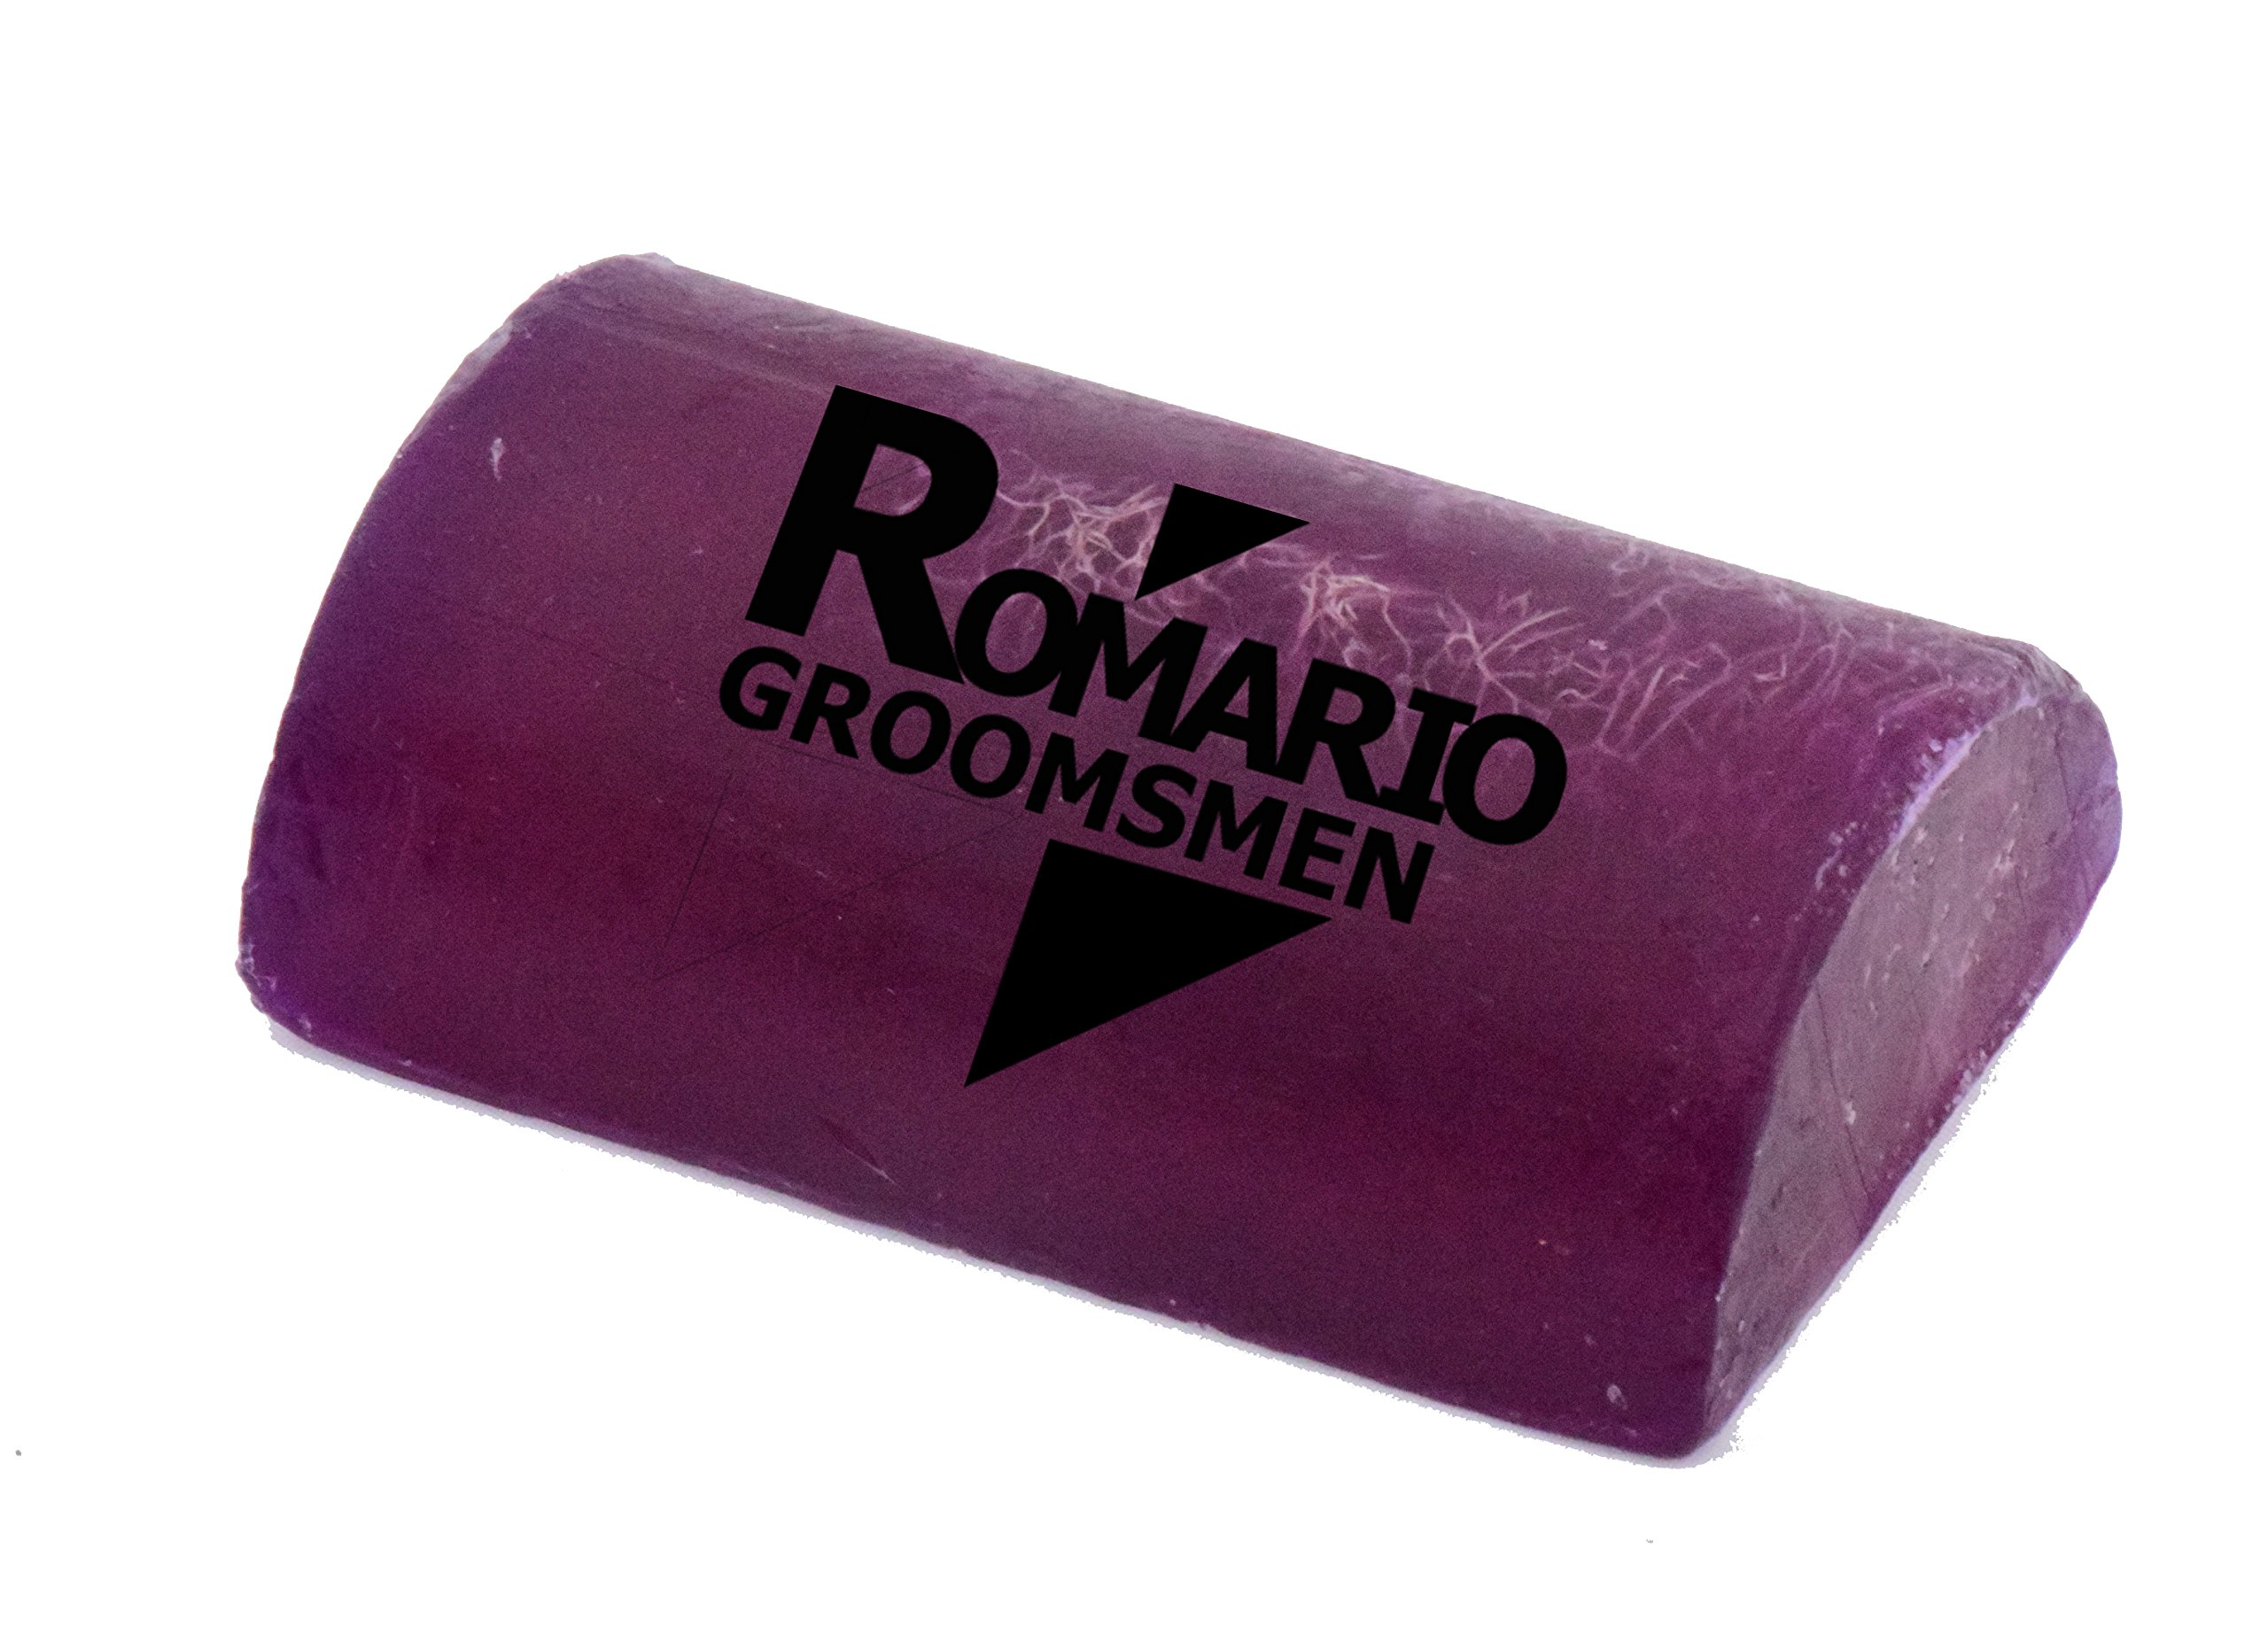 Romario Groomsmen - Luffa Soap Bar Exfoliant to clean dark spots Body Scrub Soap Whitening Dirt Remover with Super Fruit Natural Ingredient and Honey